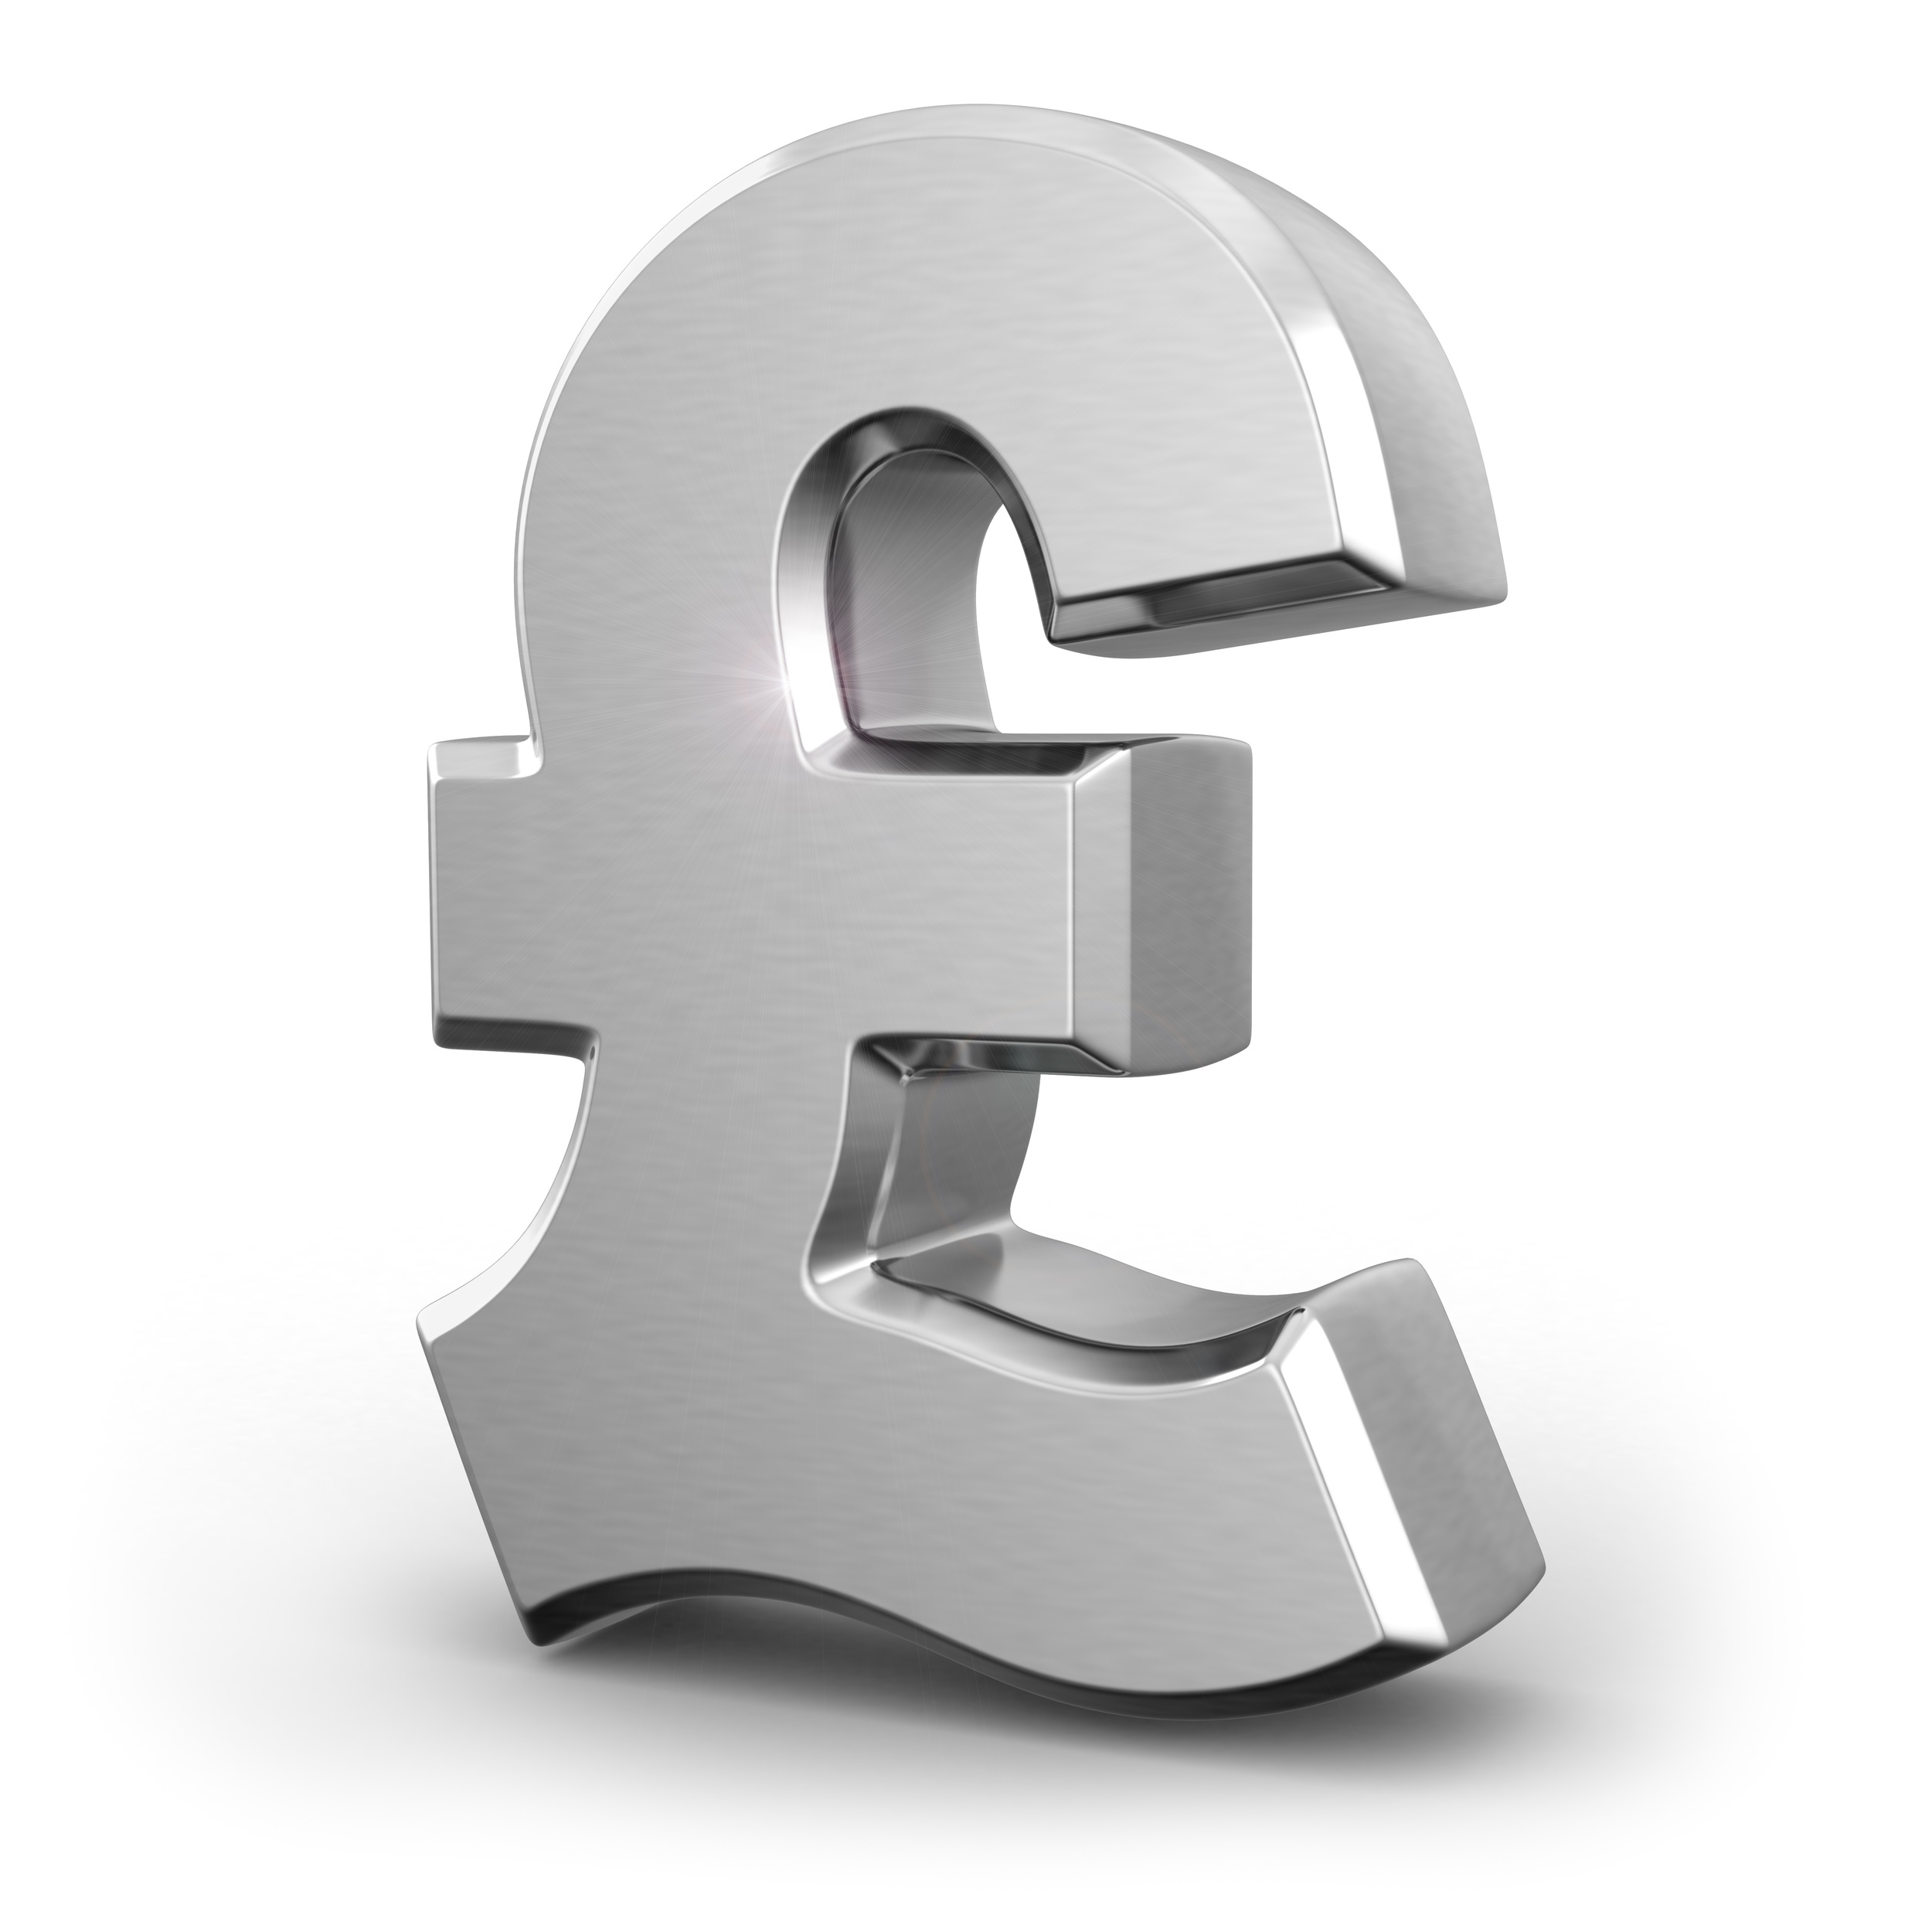 Silver pound currency sign on white isolated background. 3d